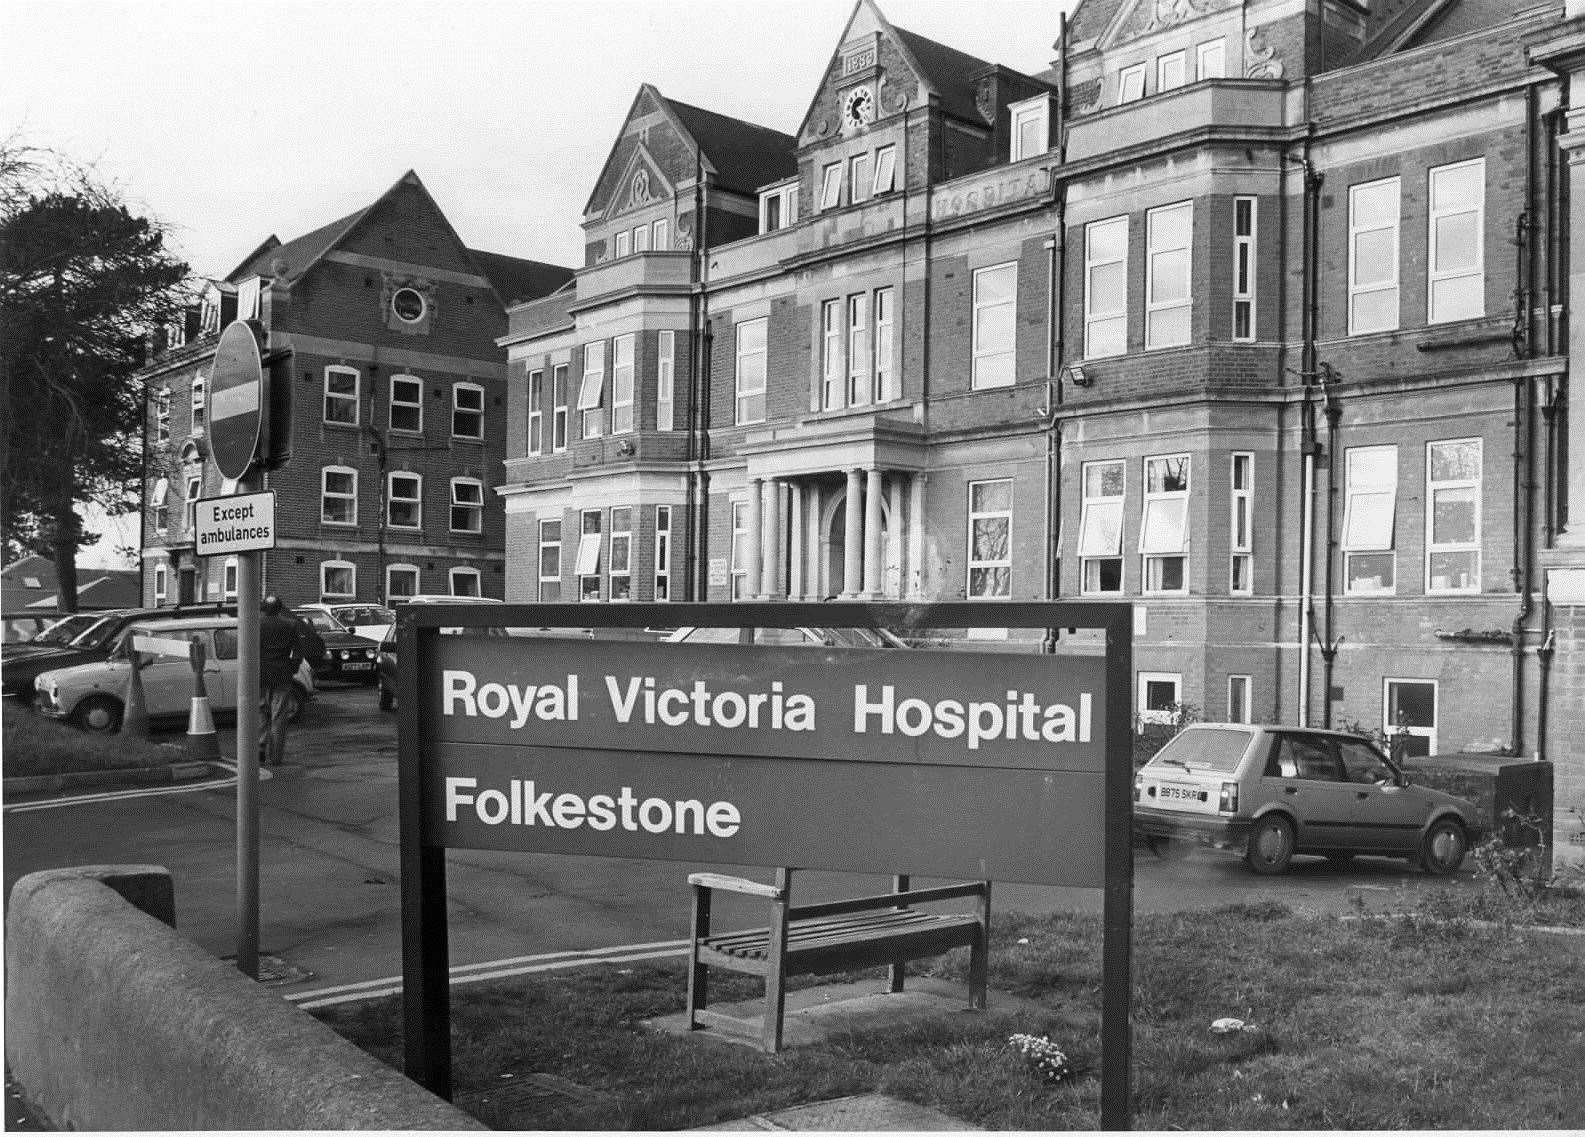 Royal Victoria Hospital pictured in 1990